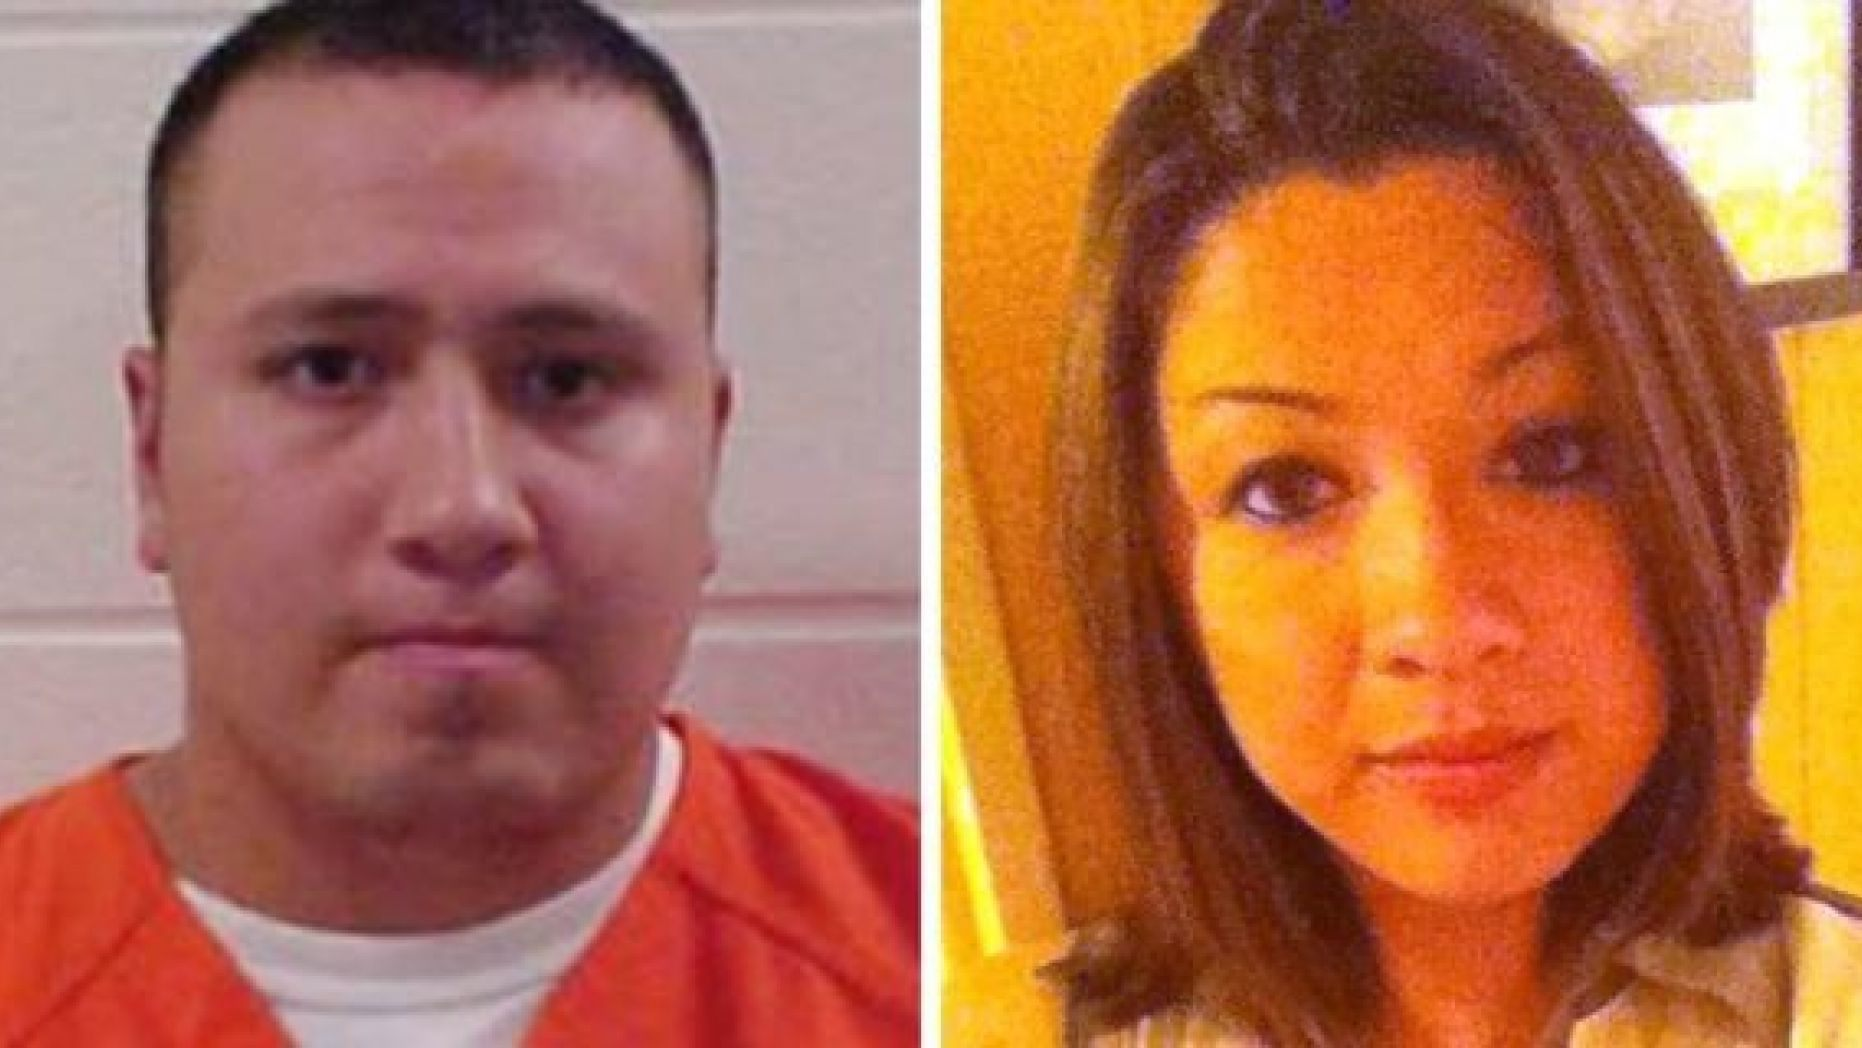 34-year-old Luis Octavio Frias is accused of brutally murdering his ex-wife, Janett Reyna, in front of her young children in August 2013.